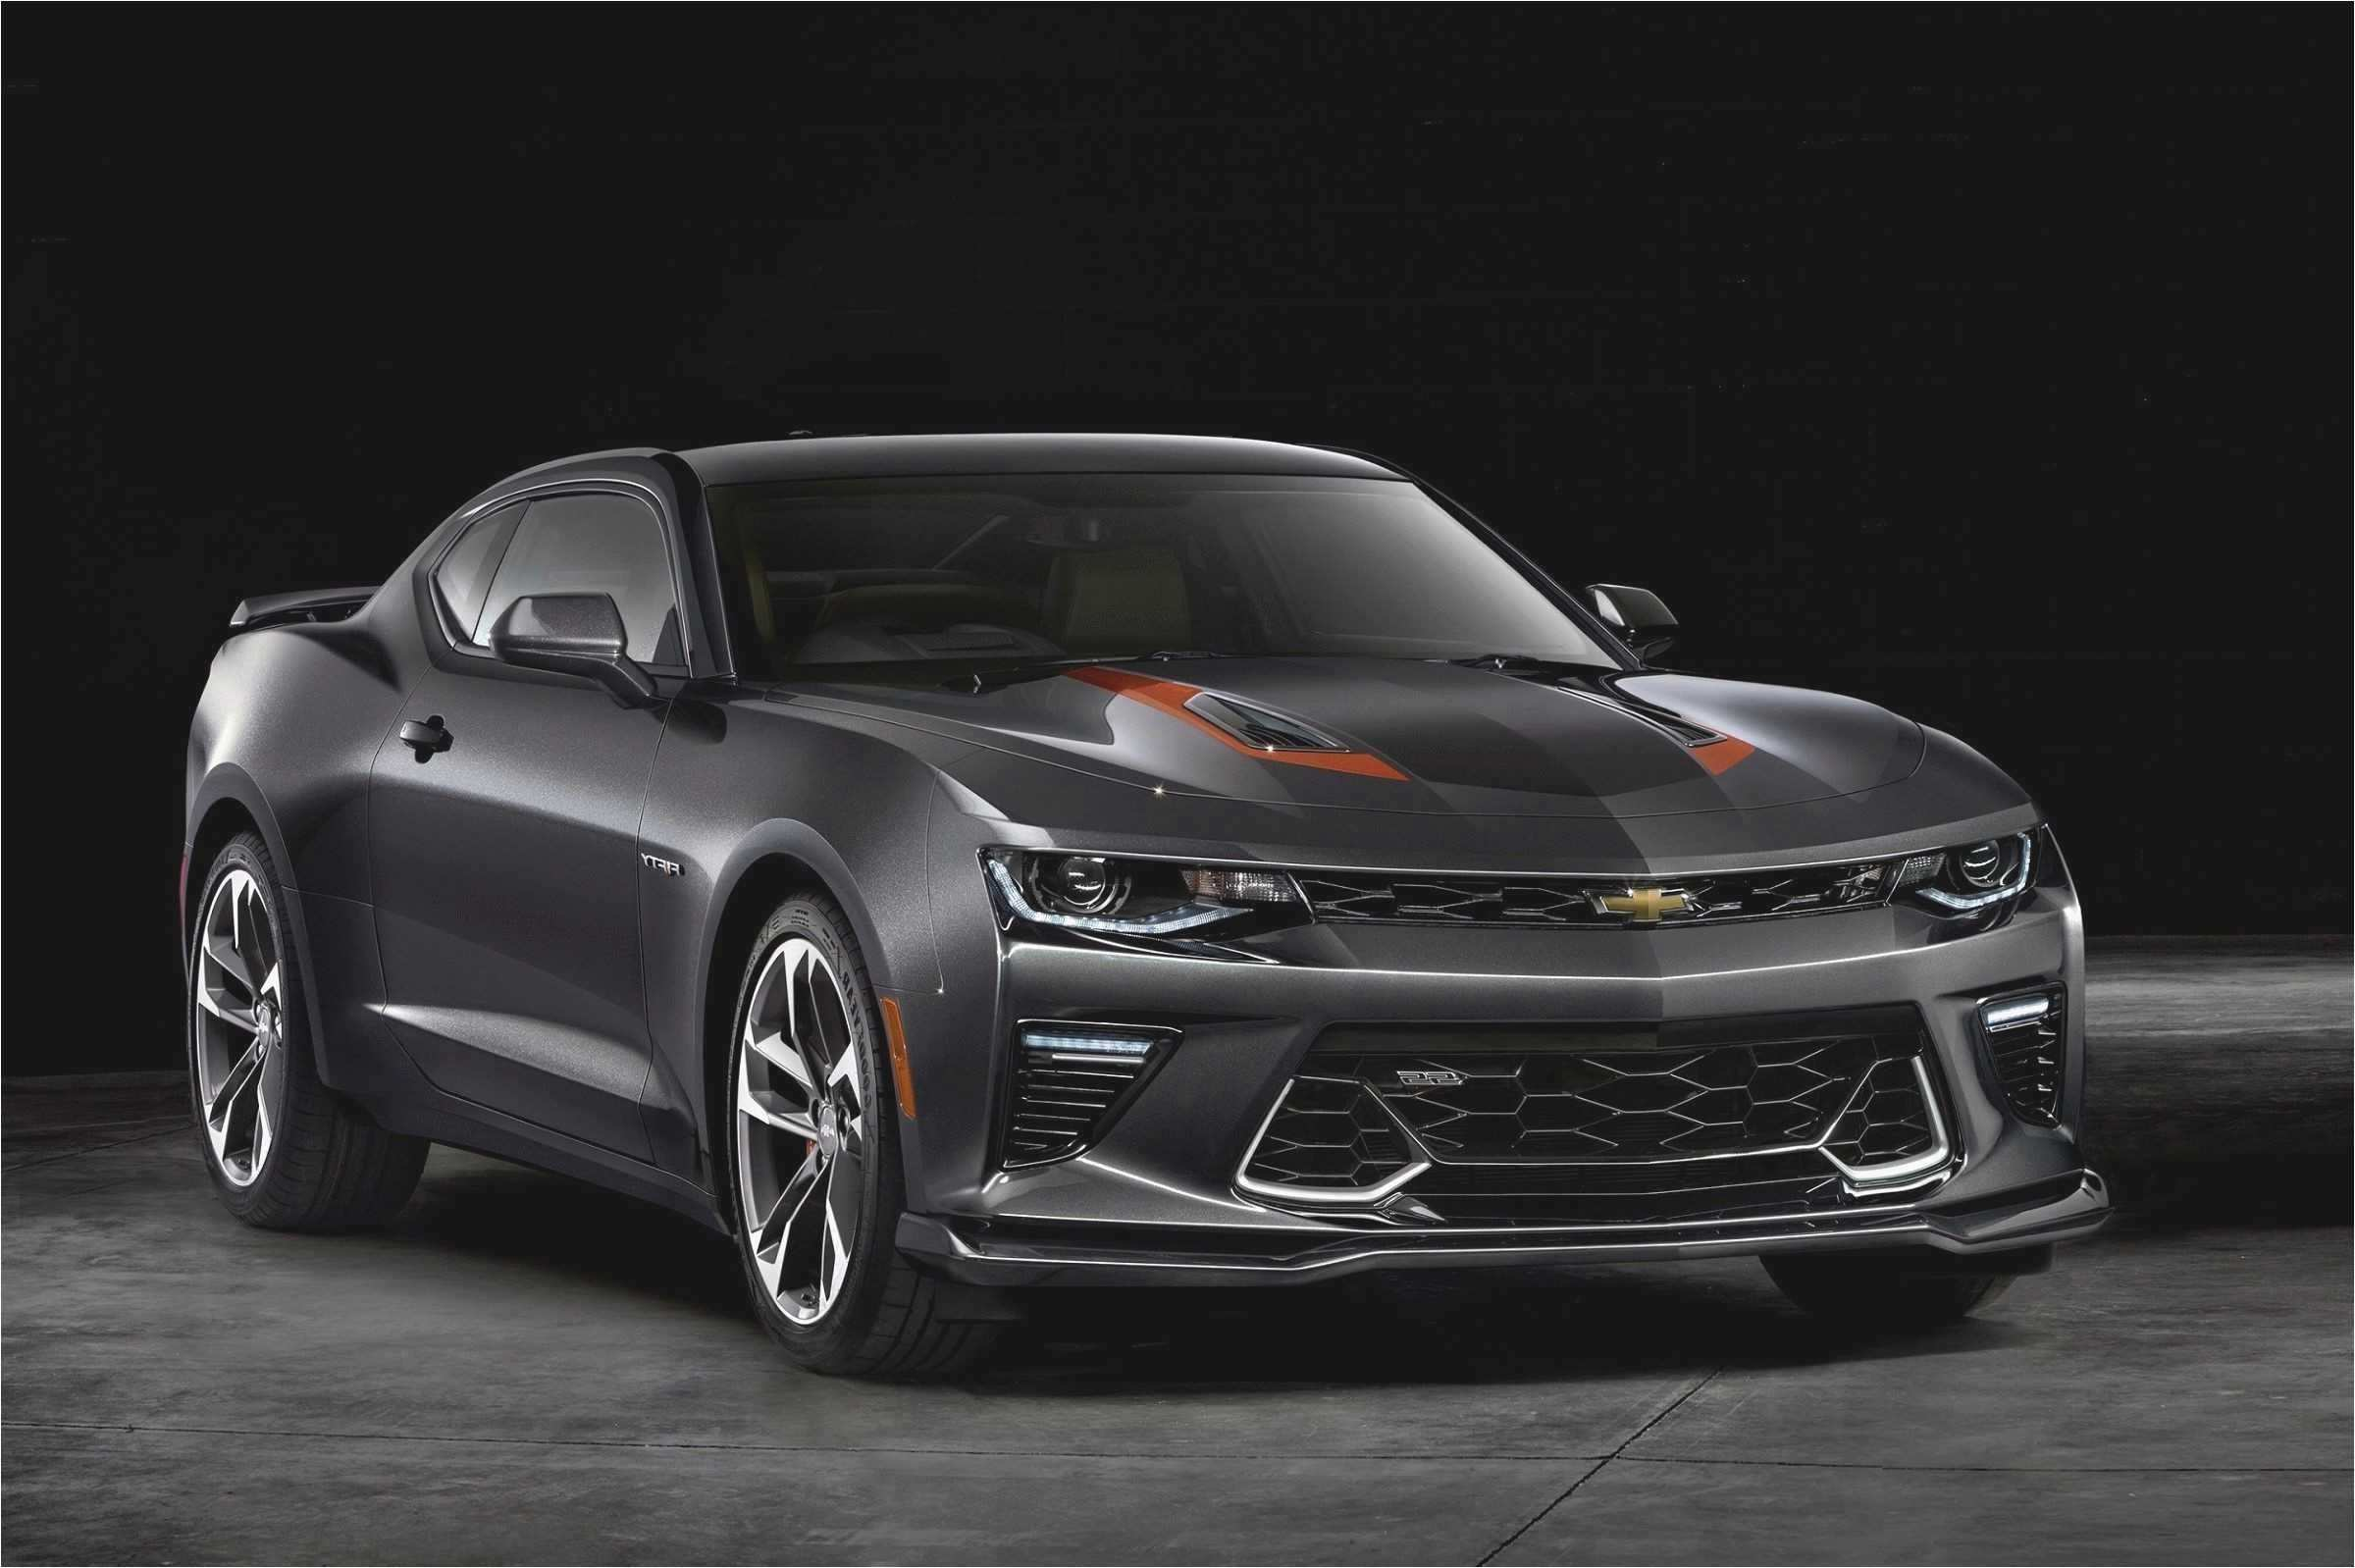 76 Concept of 2019 Chevy Camaro Competition Arrival History with 2019 Chevy Camaro Competition Arrival